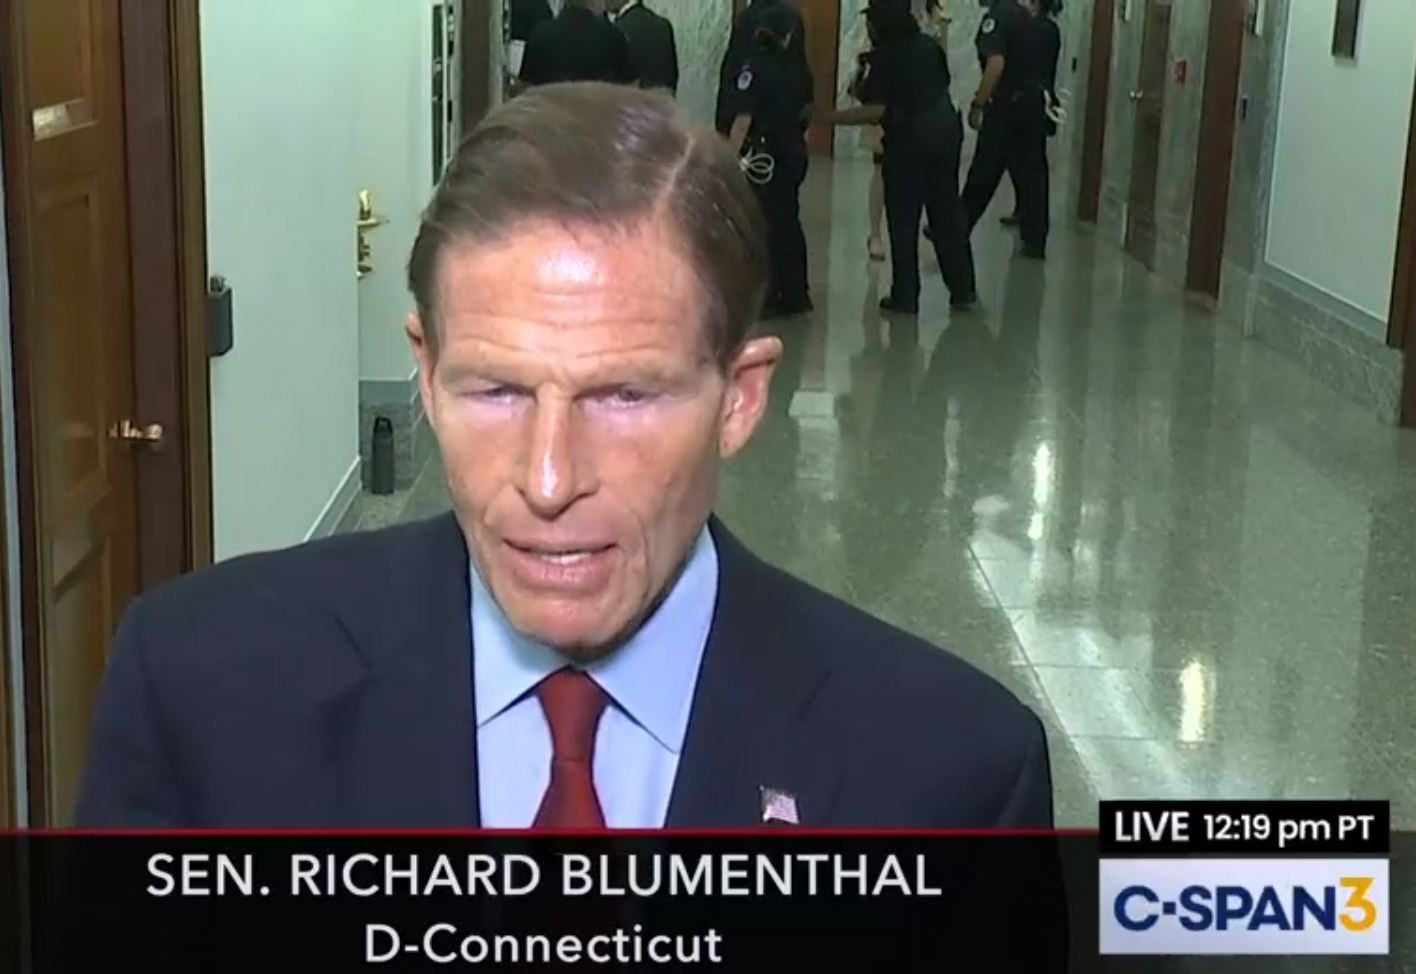 Blumenthal presses Barr to recuse himself from investigations into White House